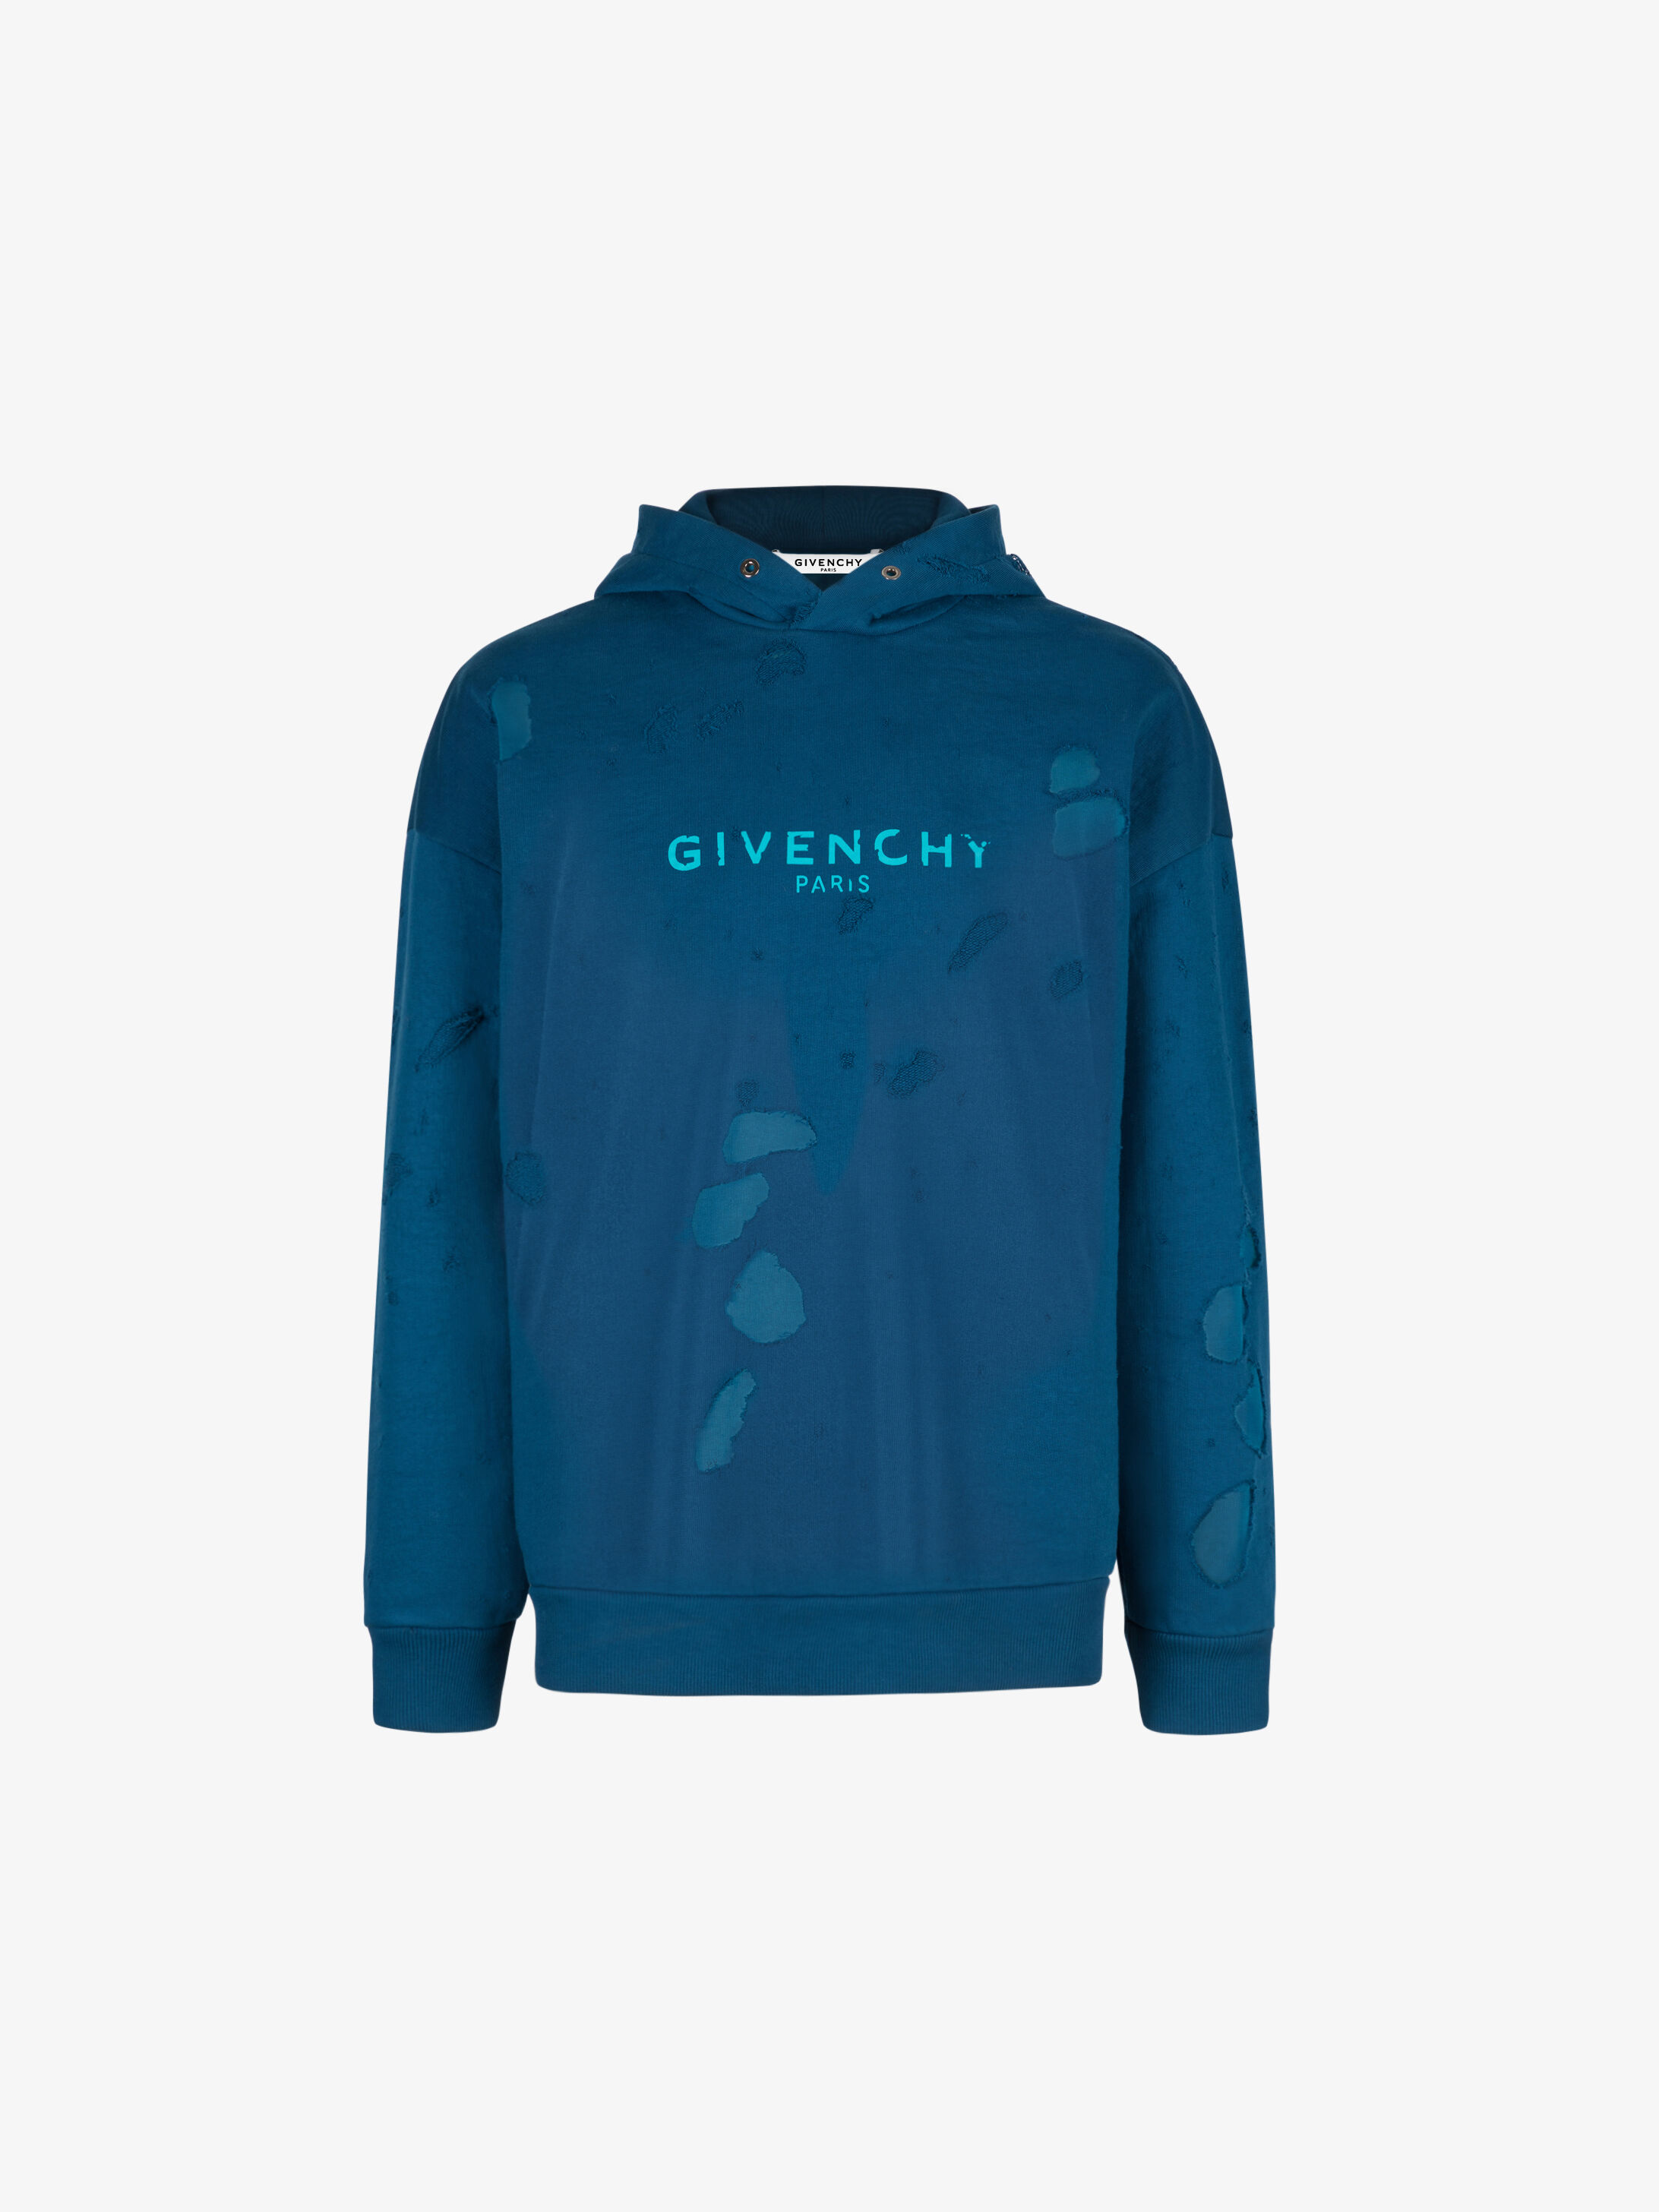 new concept 78942 dc7d9 Men's Sweatshirts collection by Givenchy. | GIVENCHY Paris